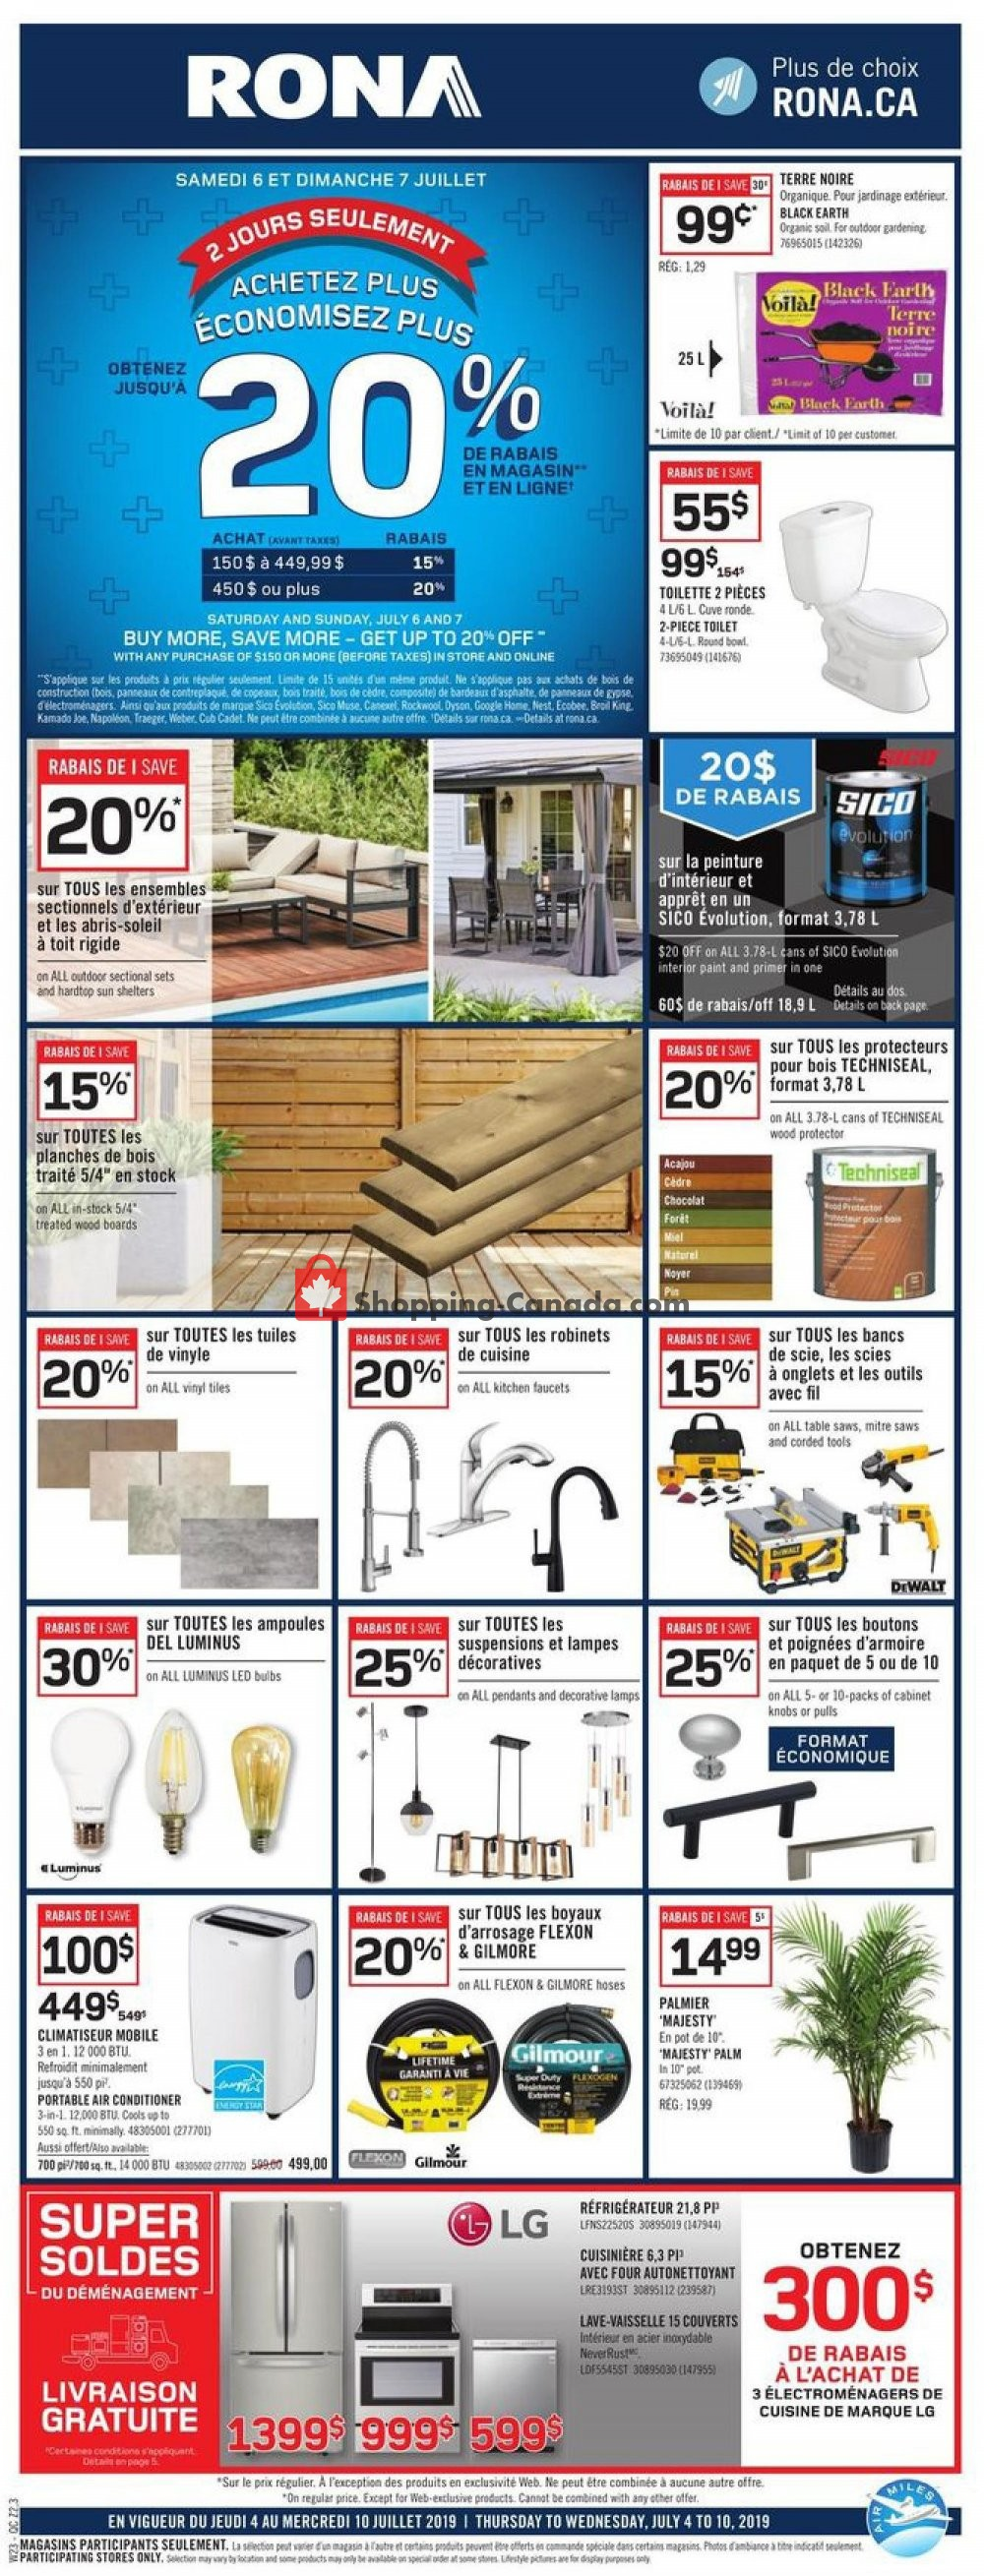 Flyer Rona Canada - from Thursday July 4, 2019 to Wednesday July 10, 2019